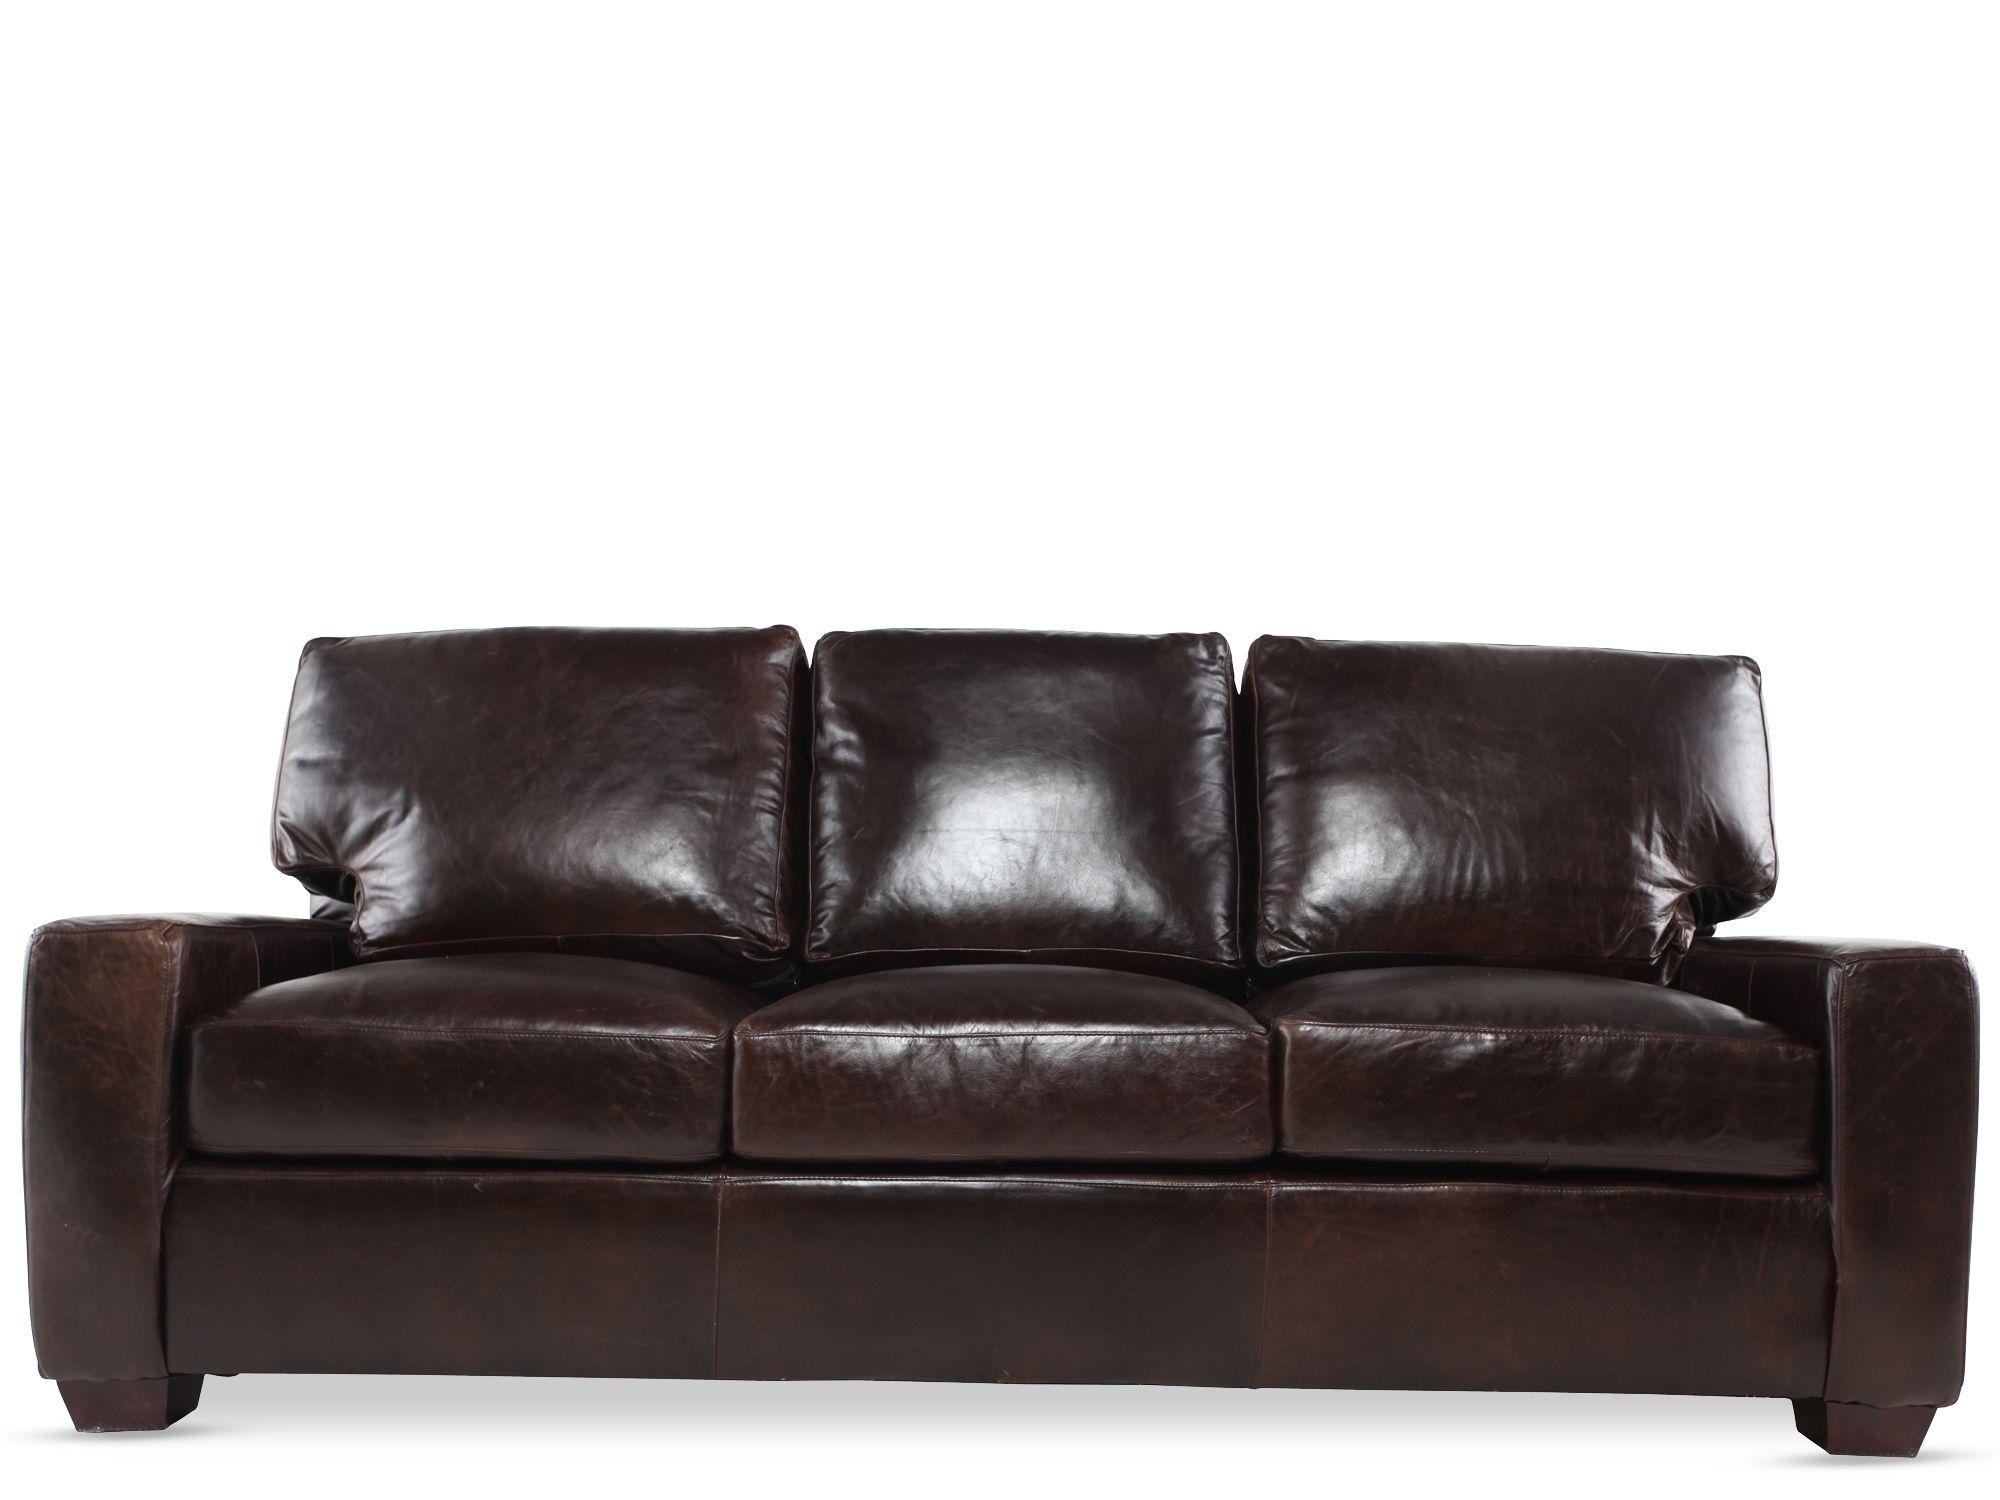 Sofas Center : Ergonomic Ava Velvet Tufted Sleeper Sofa 77 Ava Regarding Ava Velvet Tufted Sleeper Sofas (Image 17 of 20)